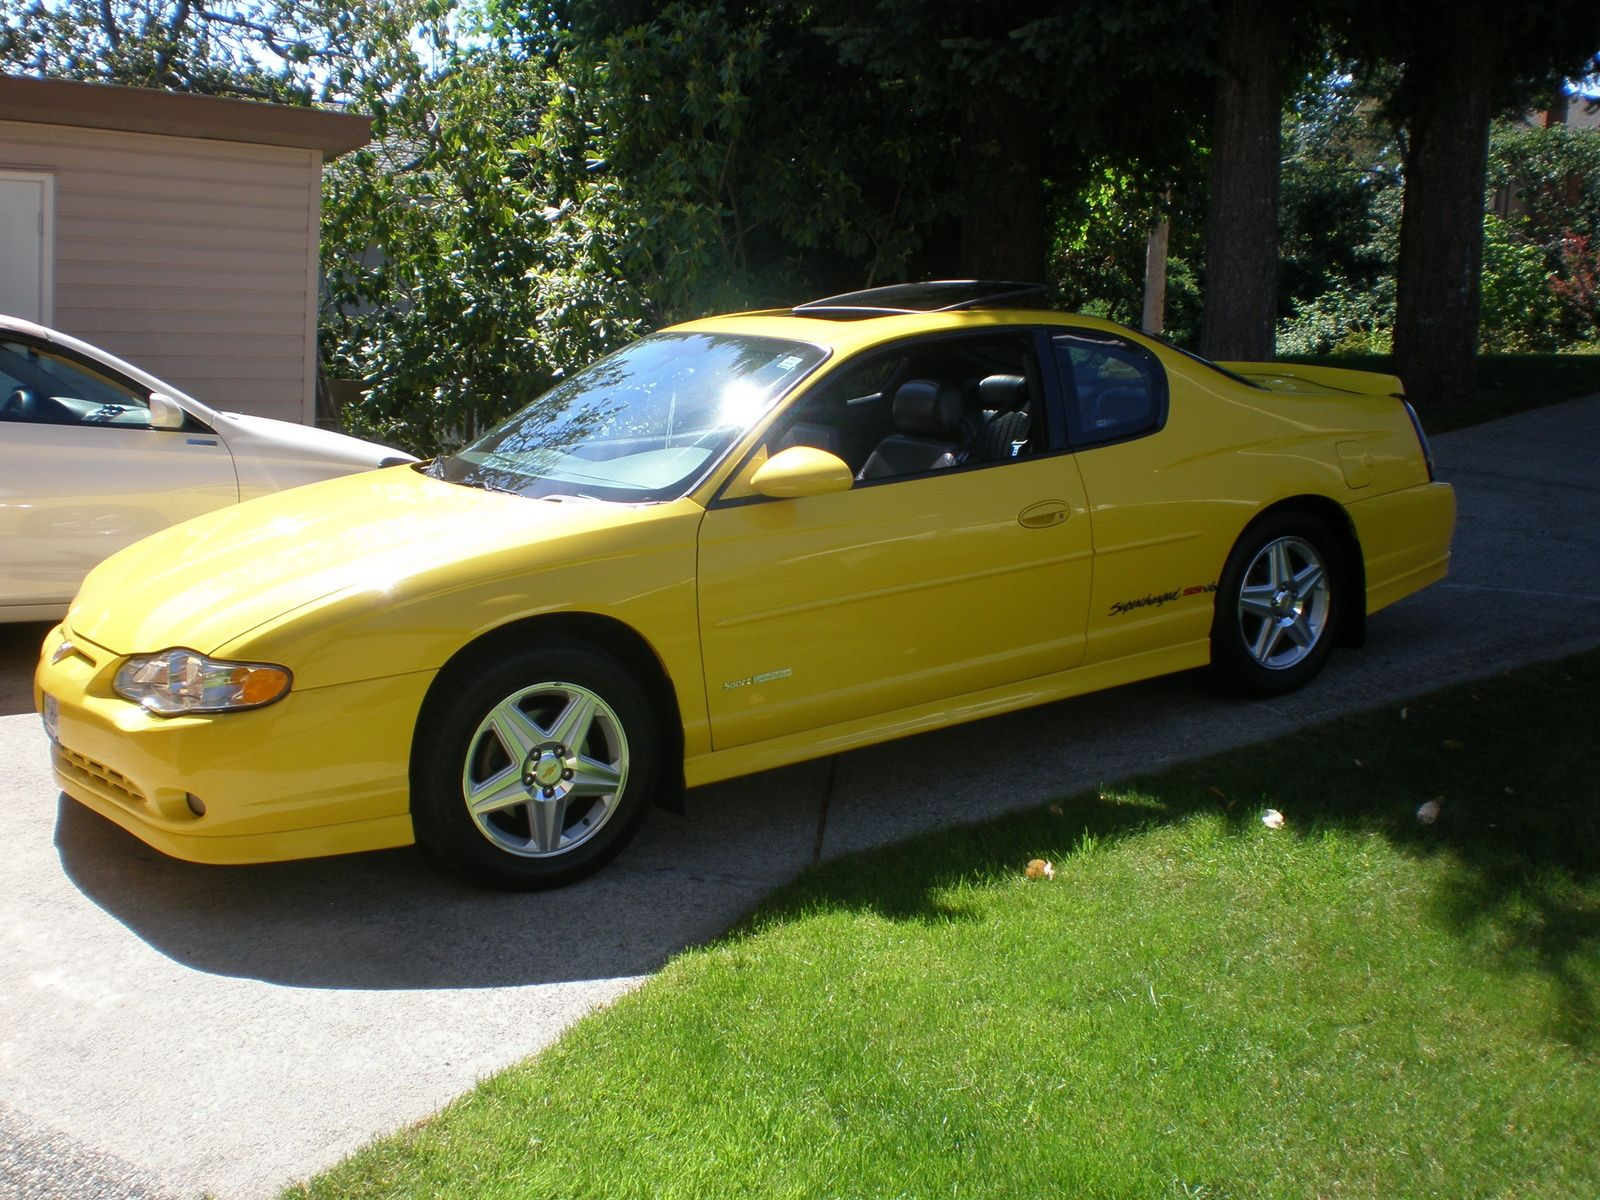 Monte carlo pictures car corvette yellow 2004 chevy monte carlo ss supercharged 240 hp 3 8